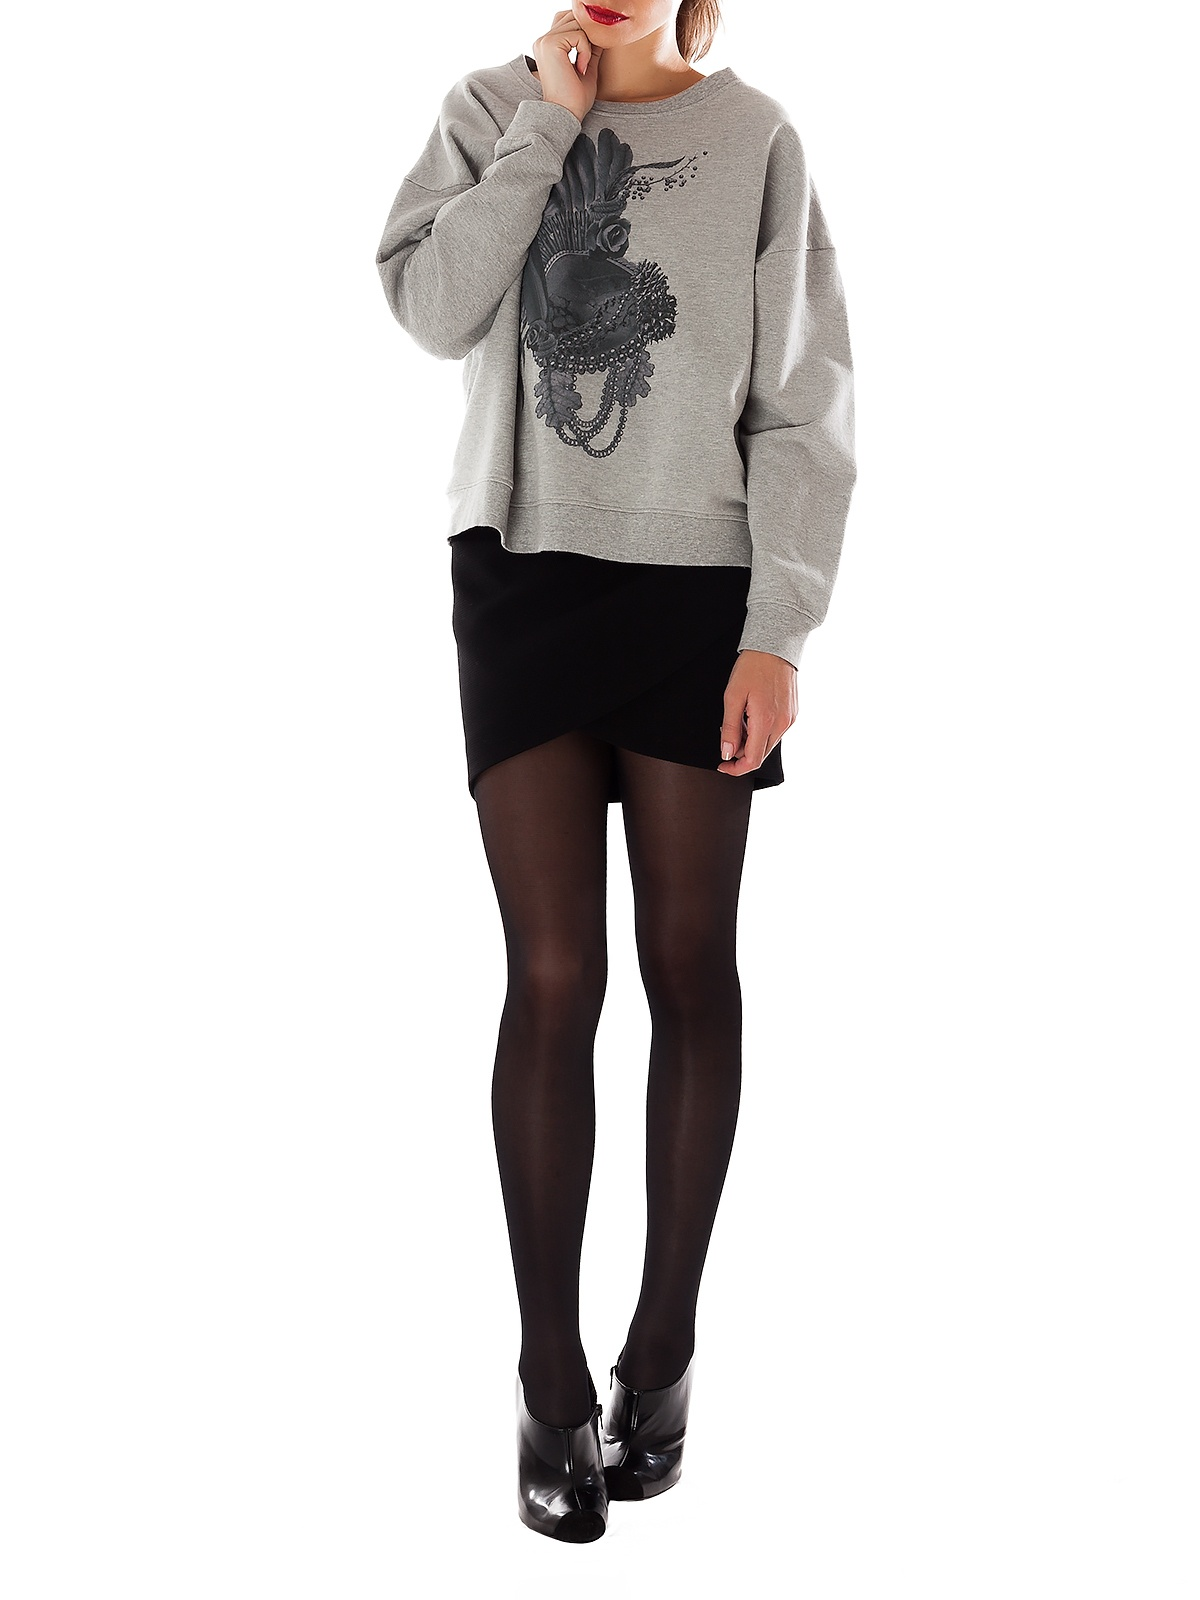 CAT ROMAN GREY KNIT SWEATER | GIRISSIMA.COM - Collectible fashion to love and to last